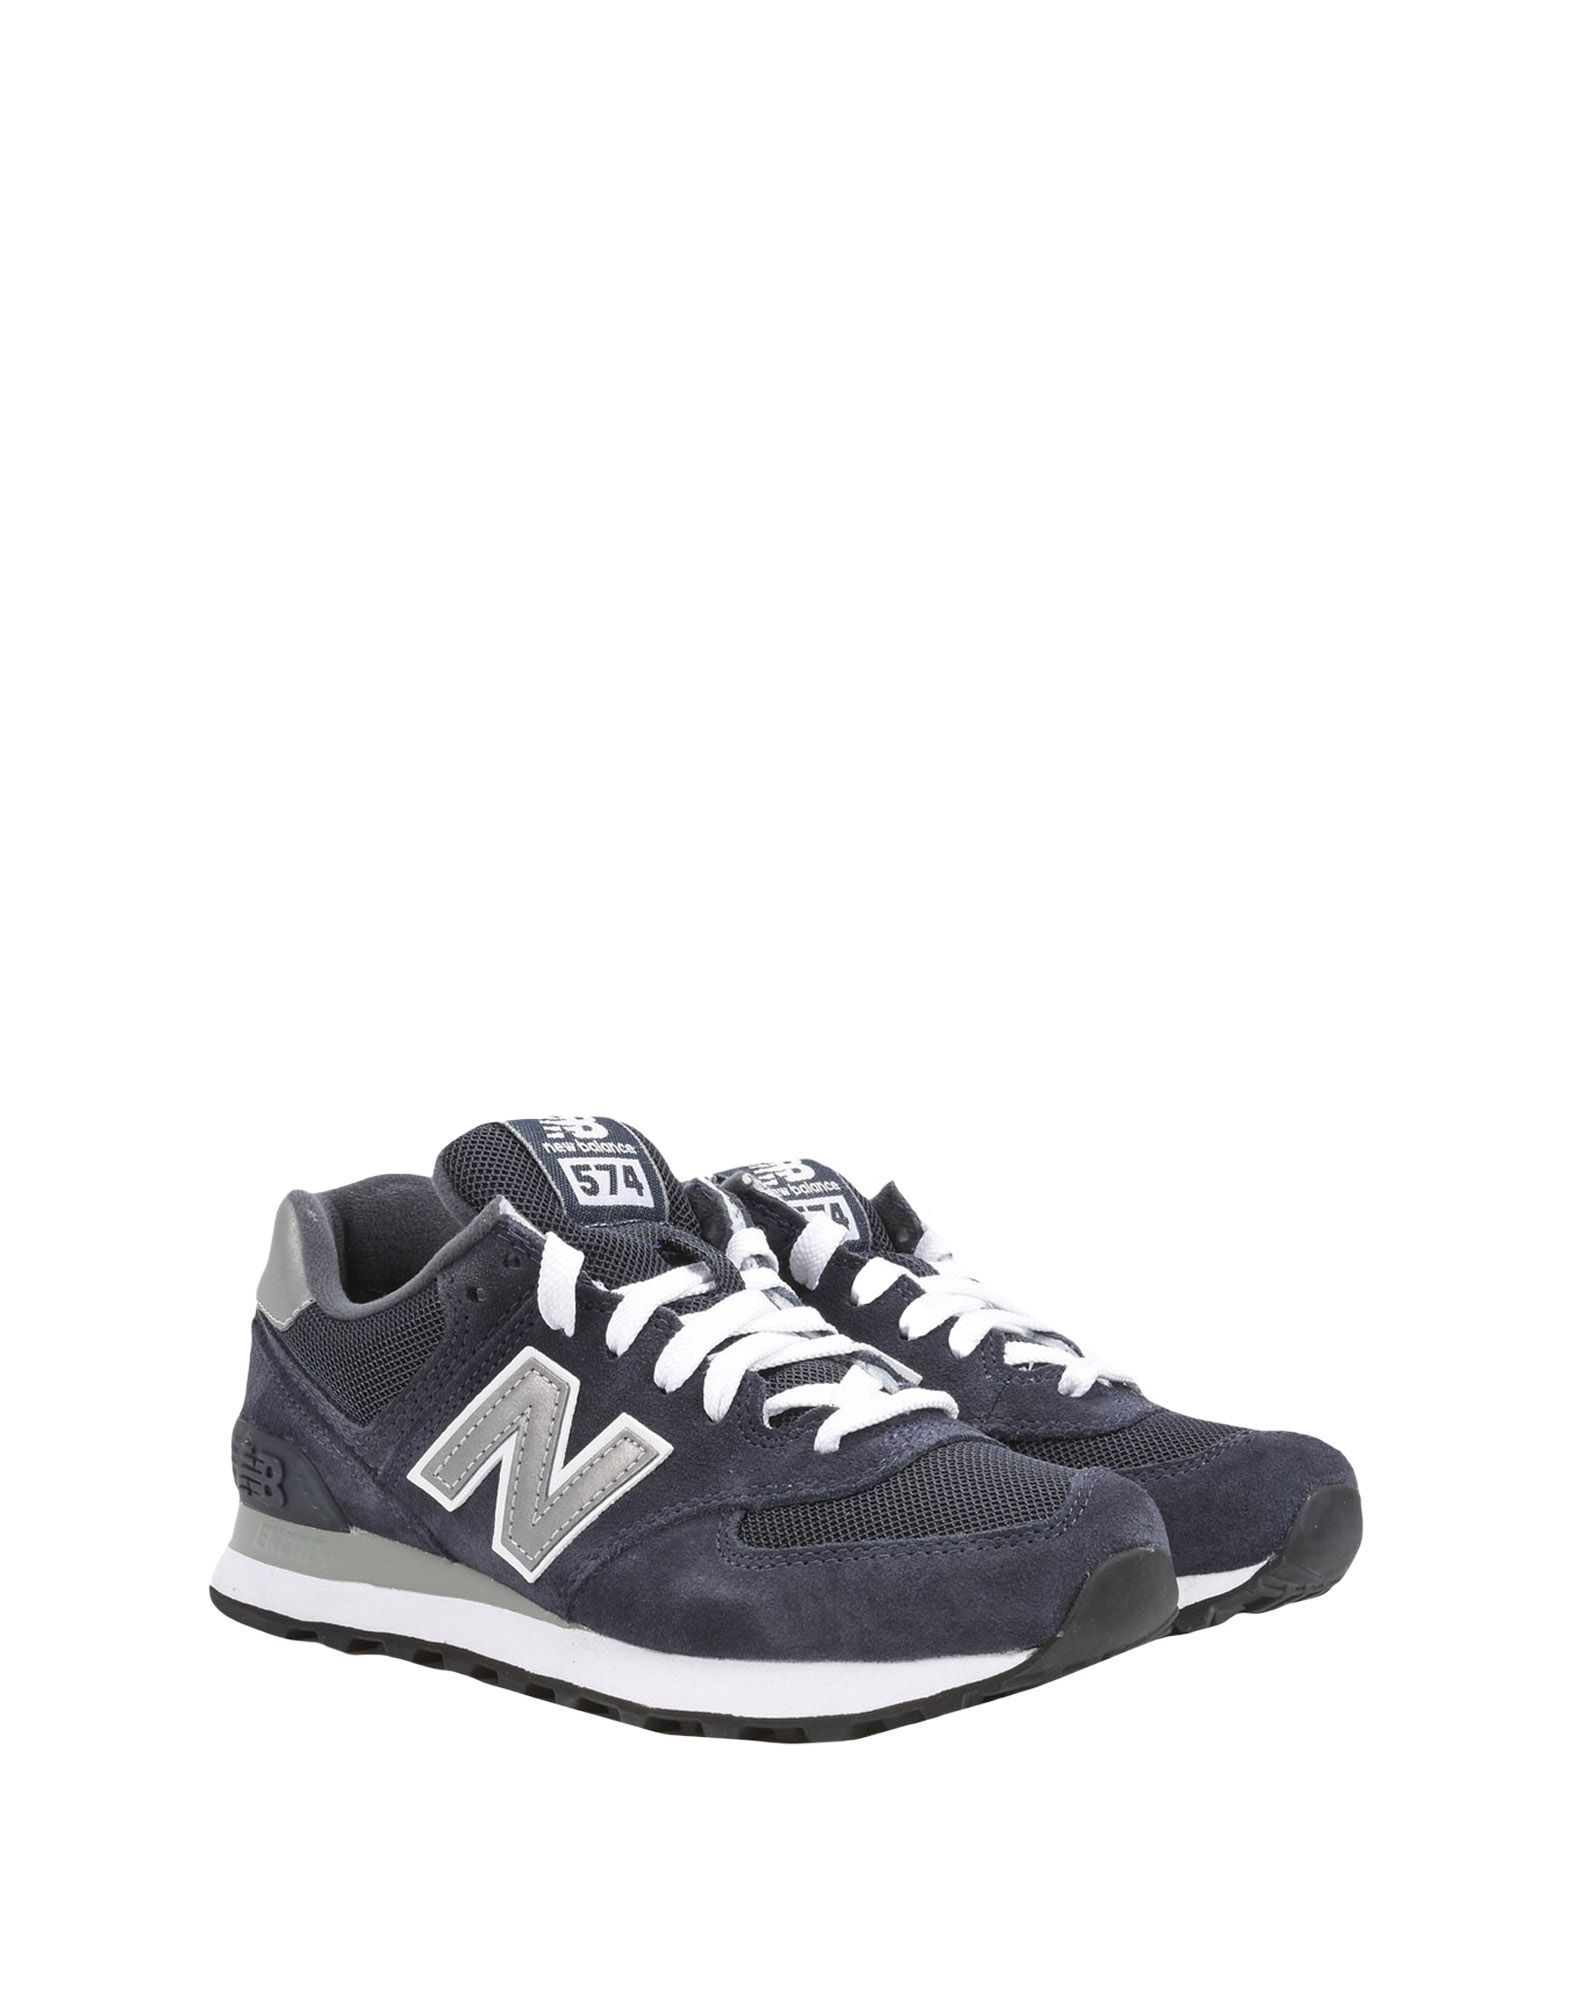 Sneakers New Balance 574 Core Carryover - Femme - Sneakers New Balance sur